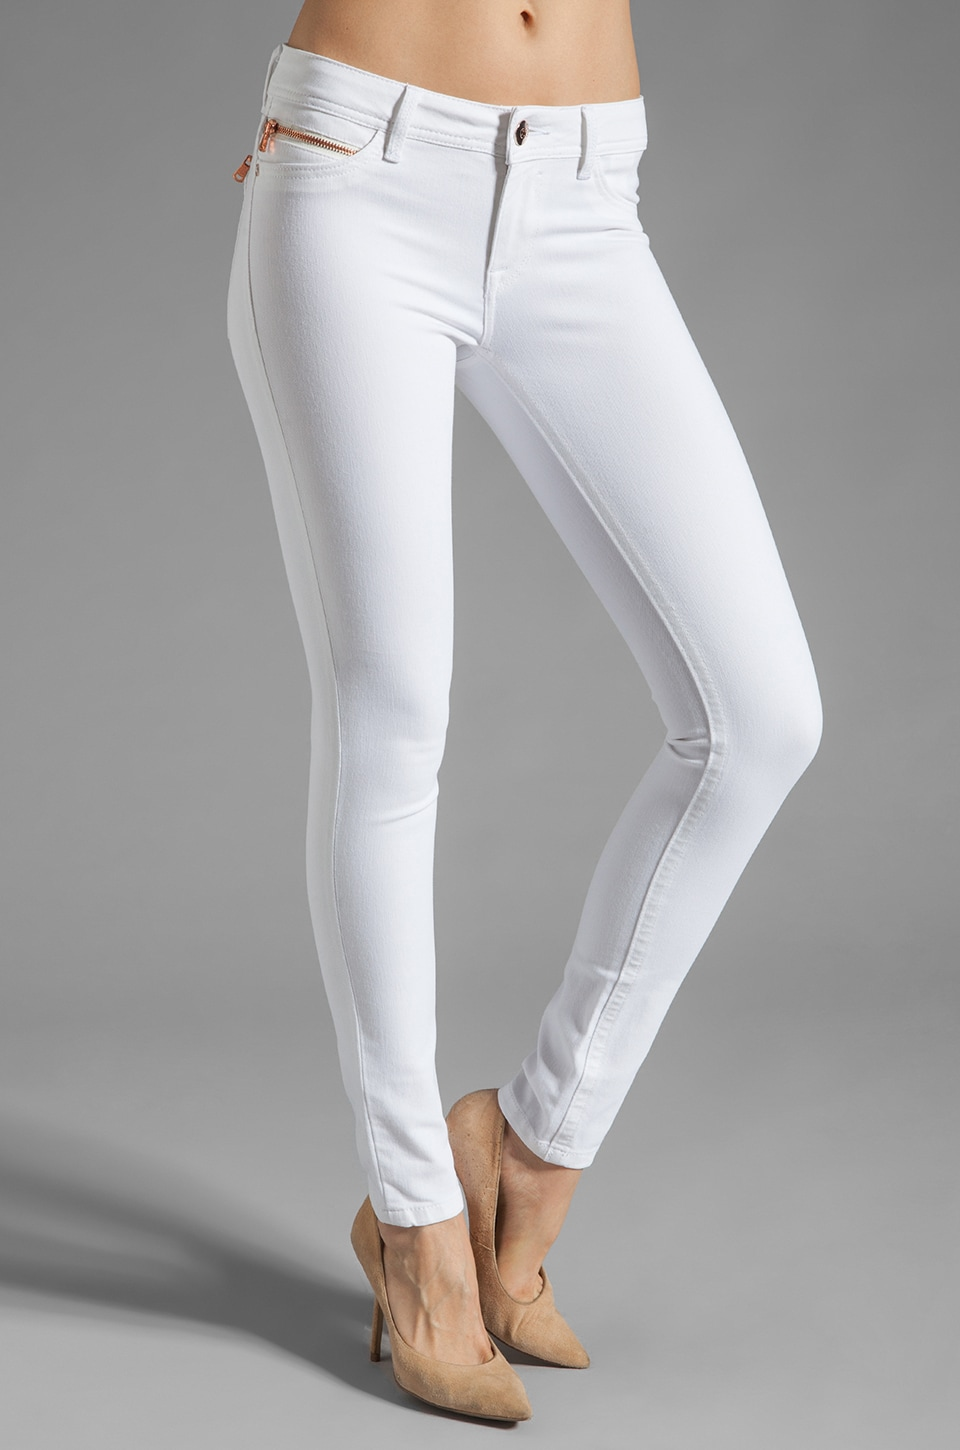 DL1961 Amanda Skinny in Astor